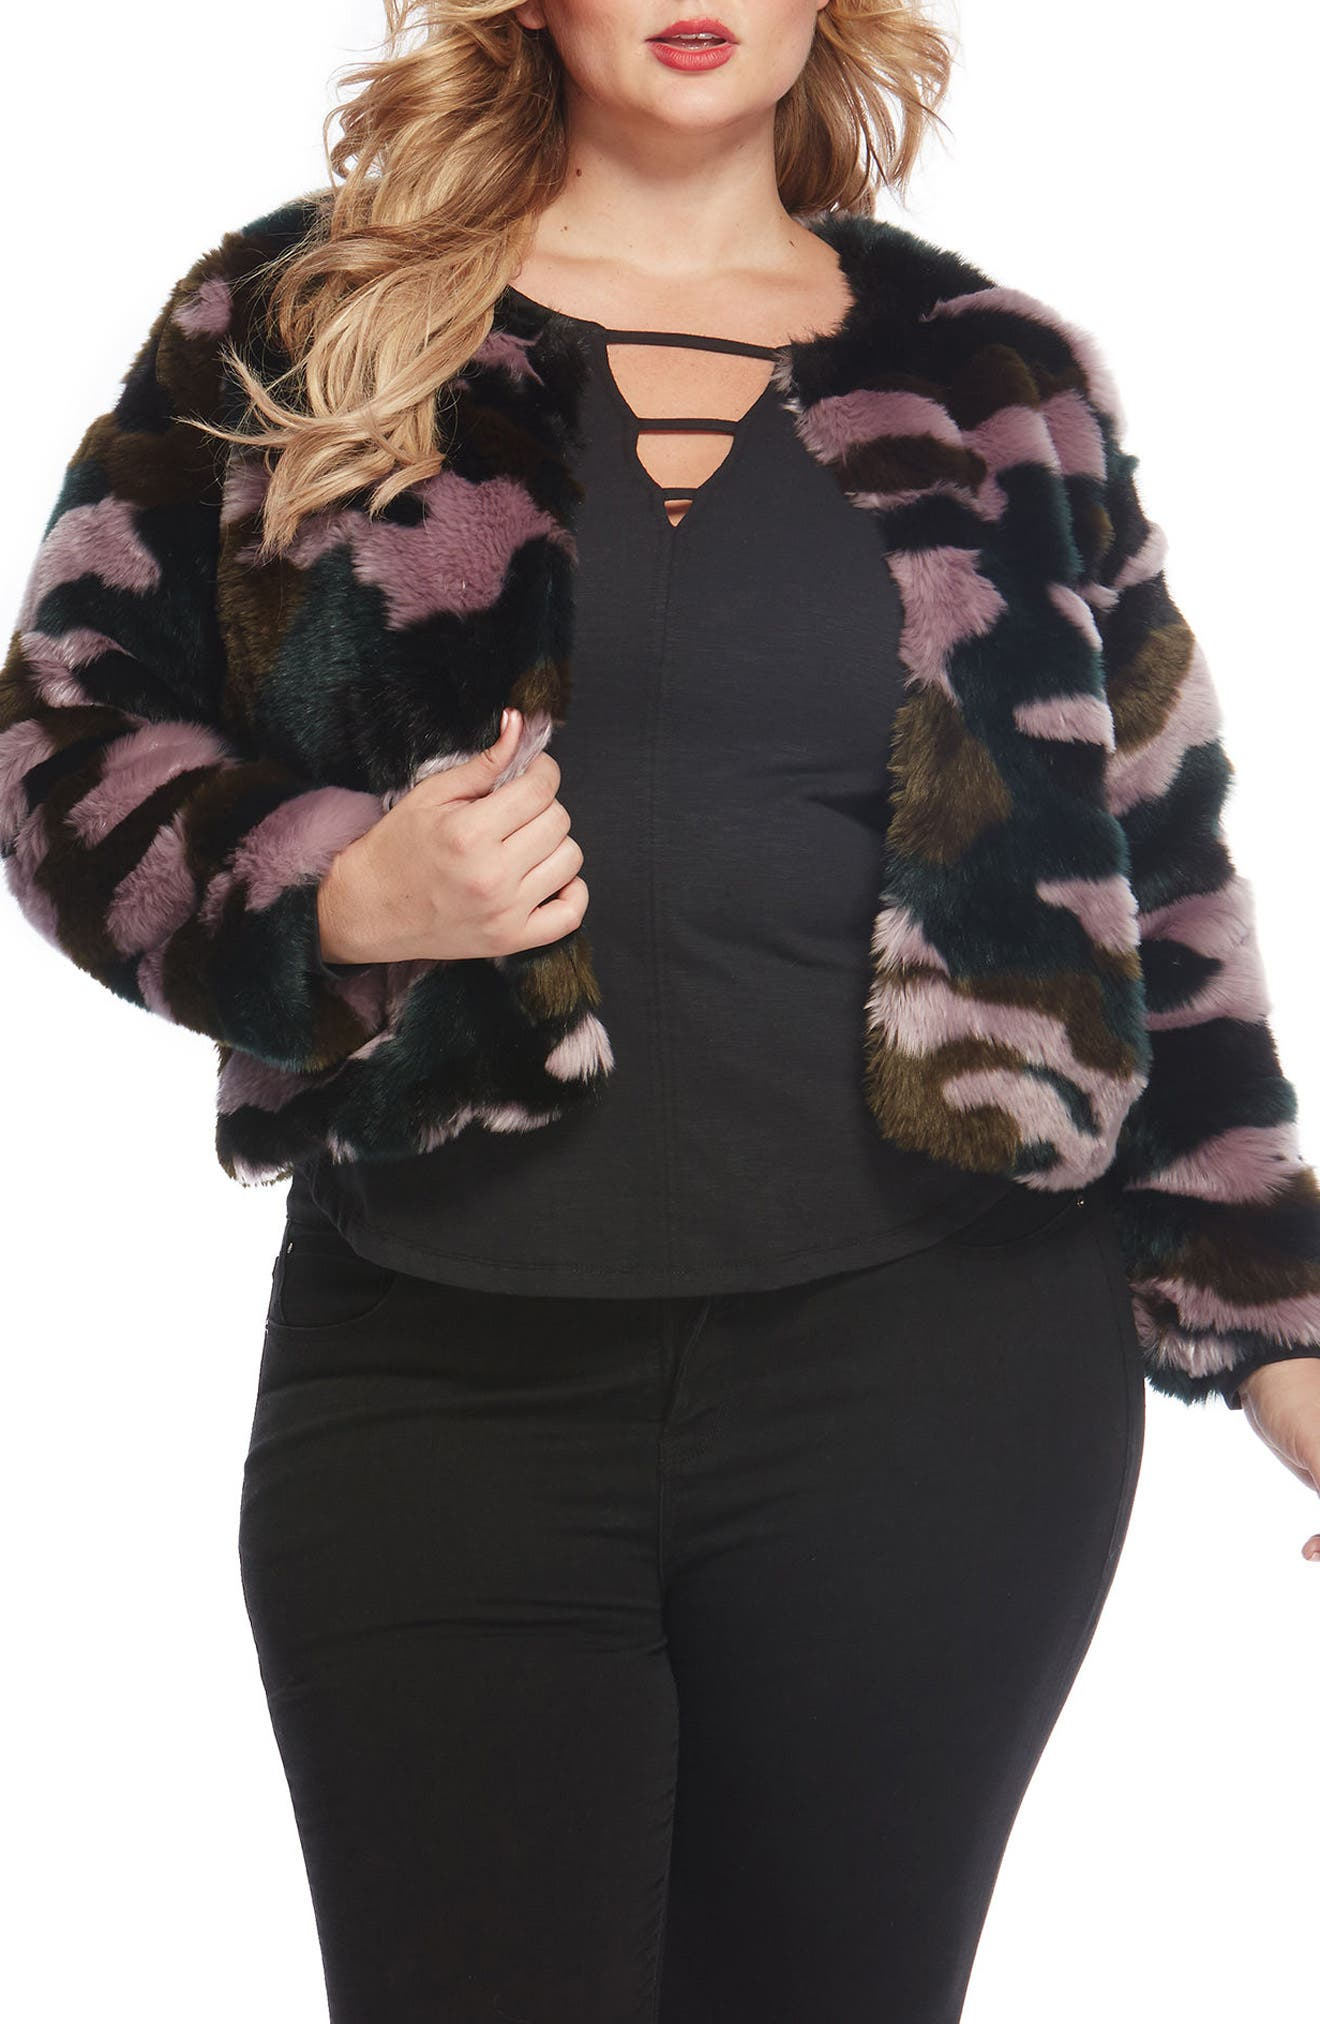 Alternate Image 1 Selected - REBEL WILSON X ANGELS Faux Fur Jacket (Plus Size)